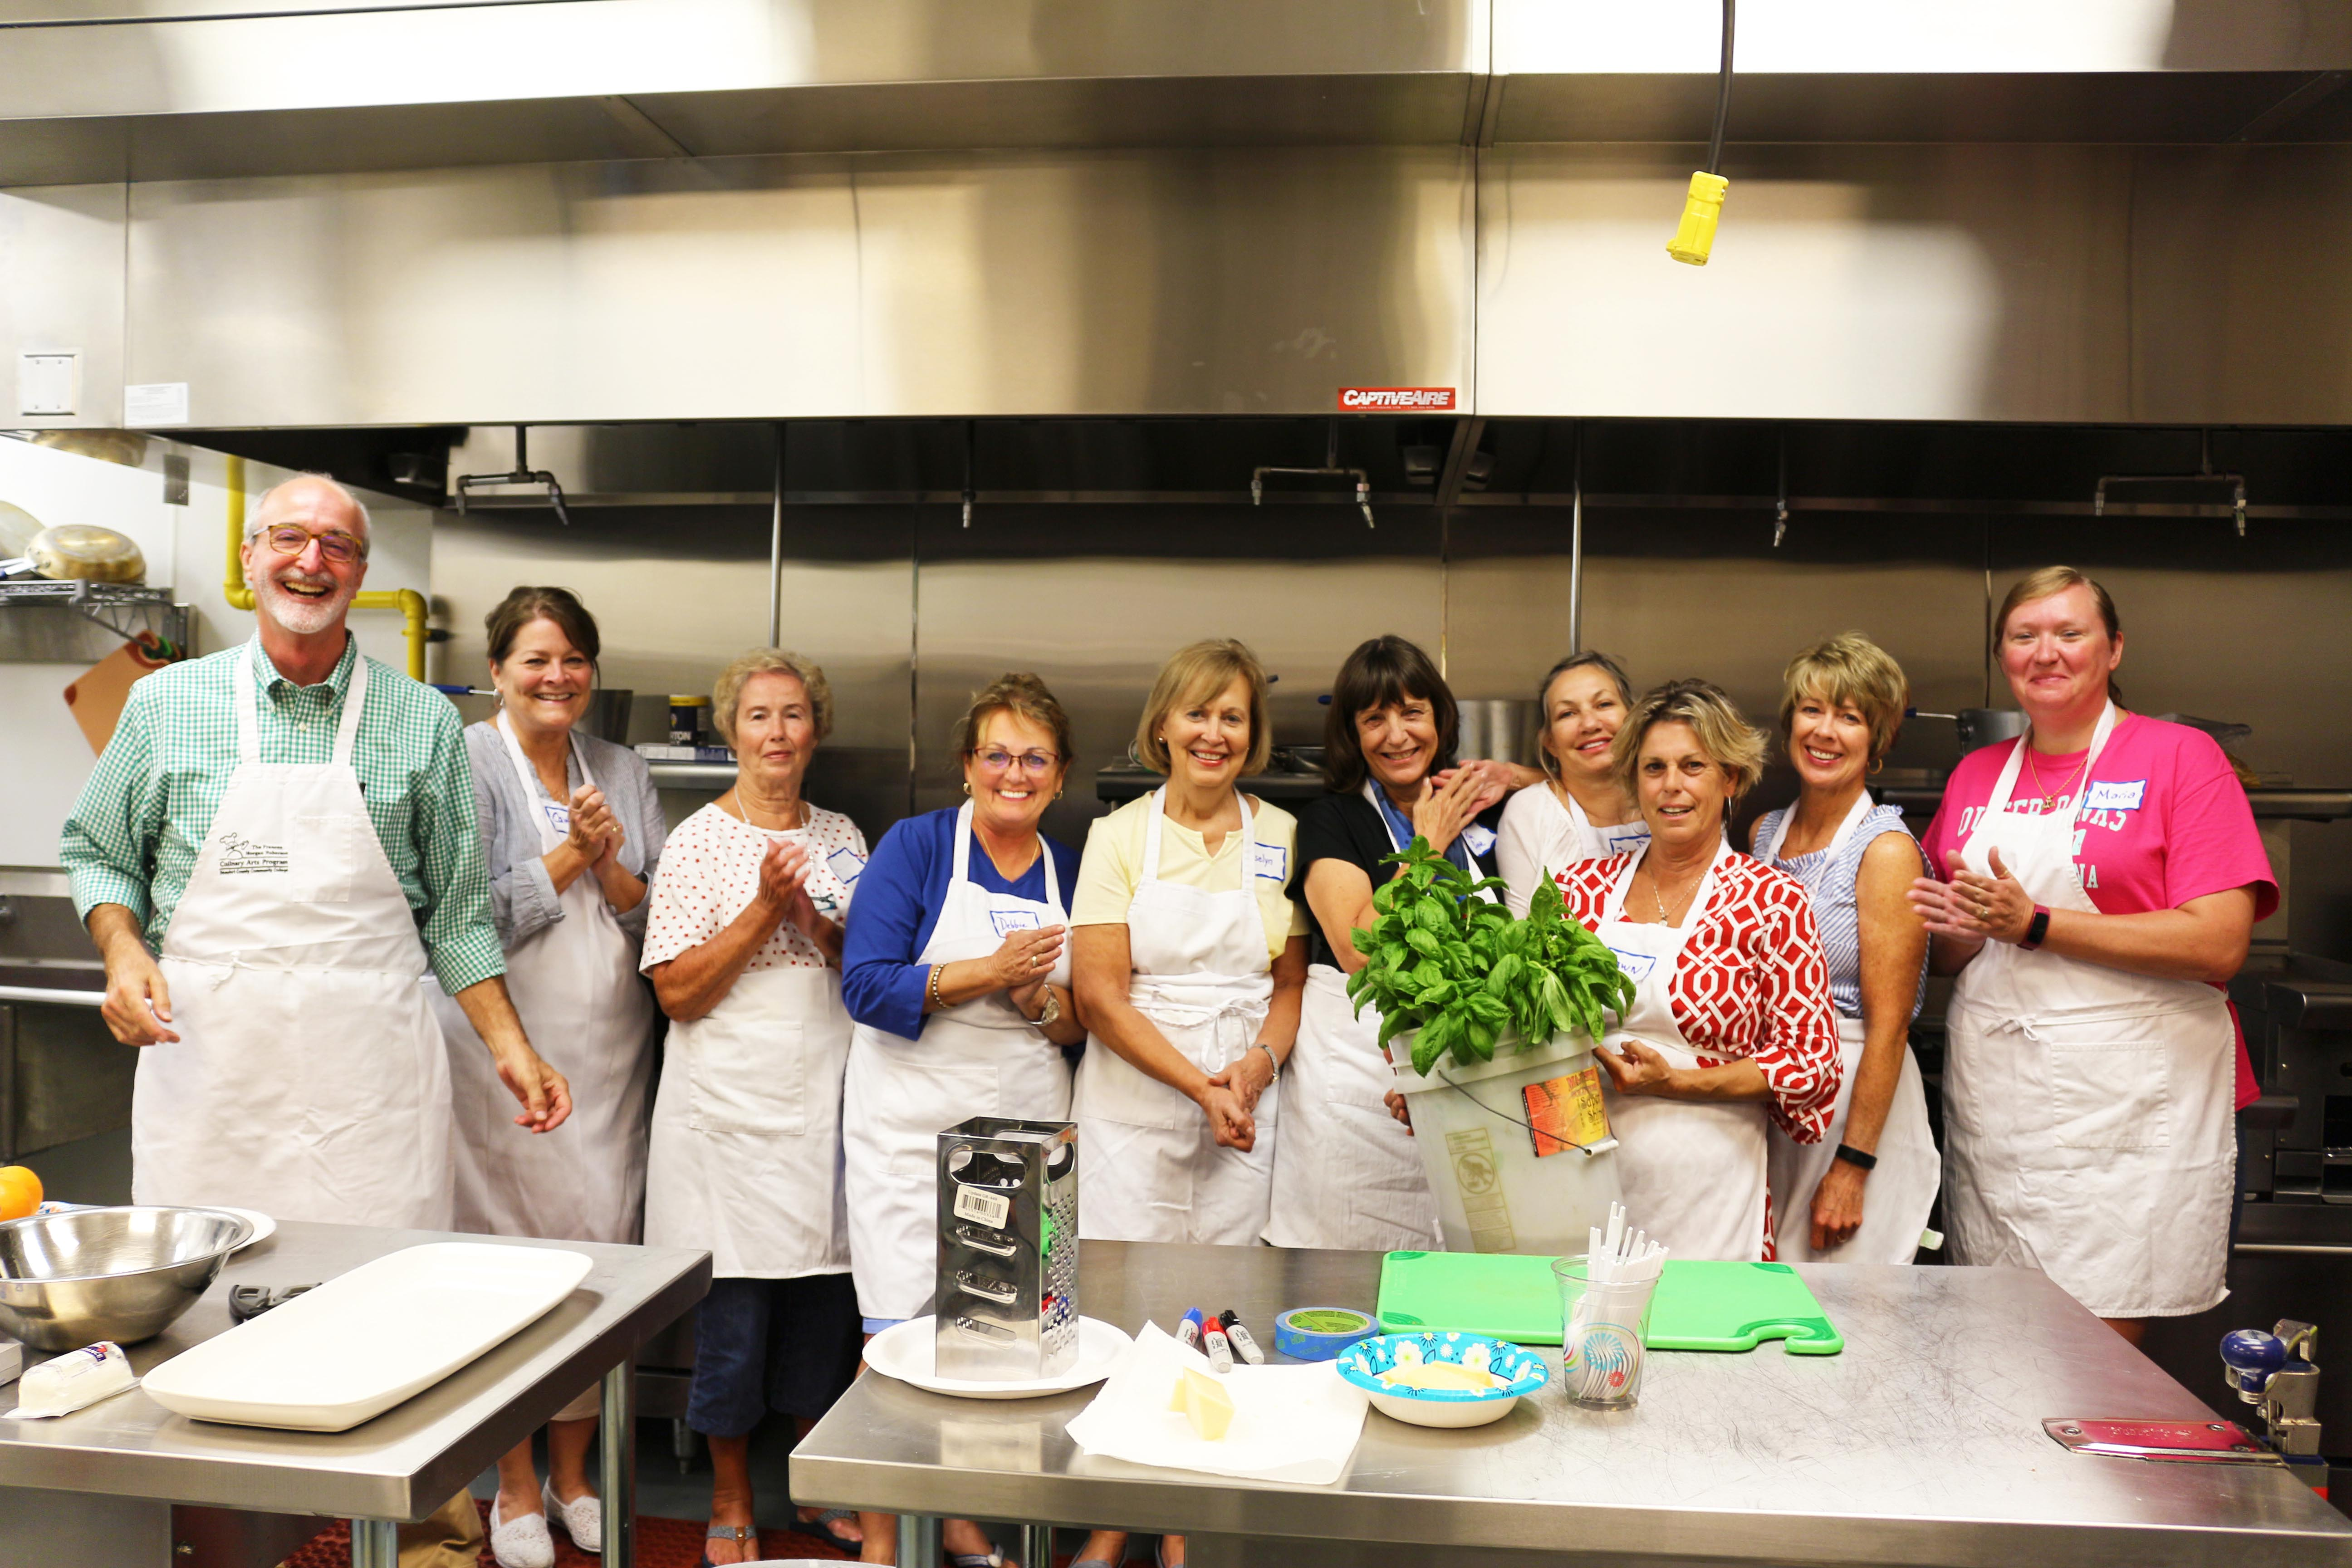 A cooking class lined up holding a bucket of basil.